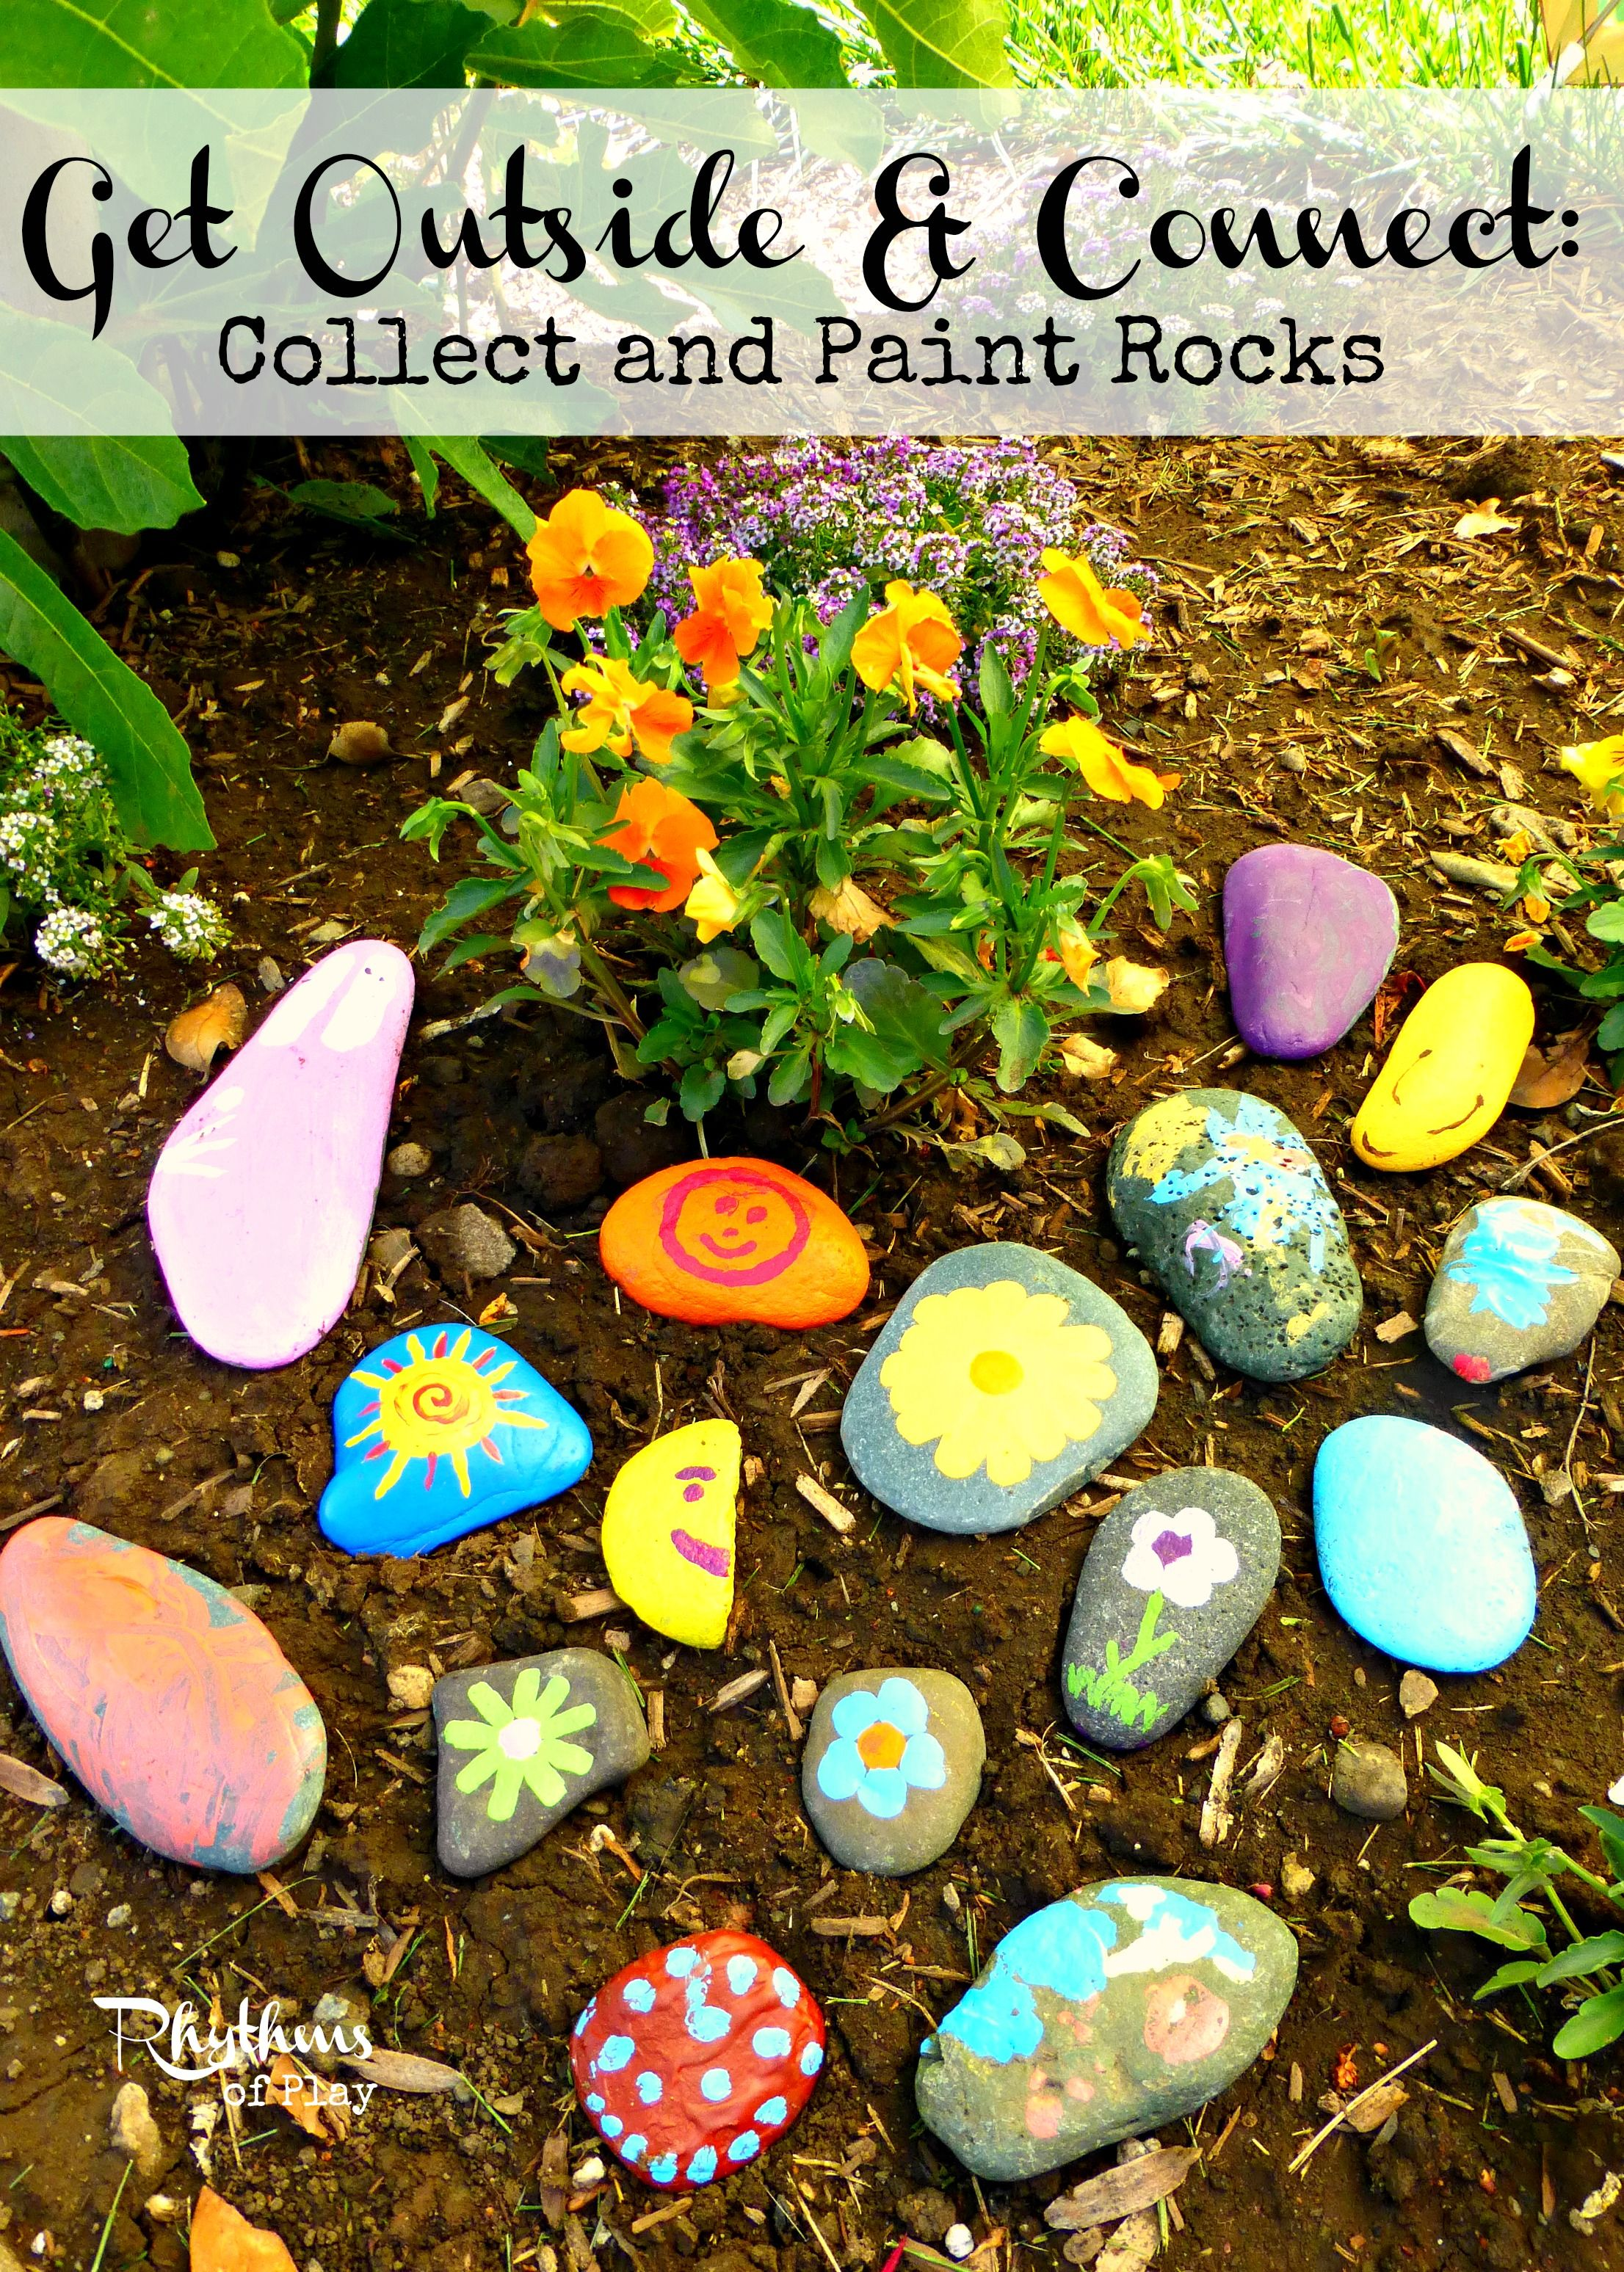 Get Outside & Connect Collect and Paint Rocks